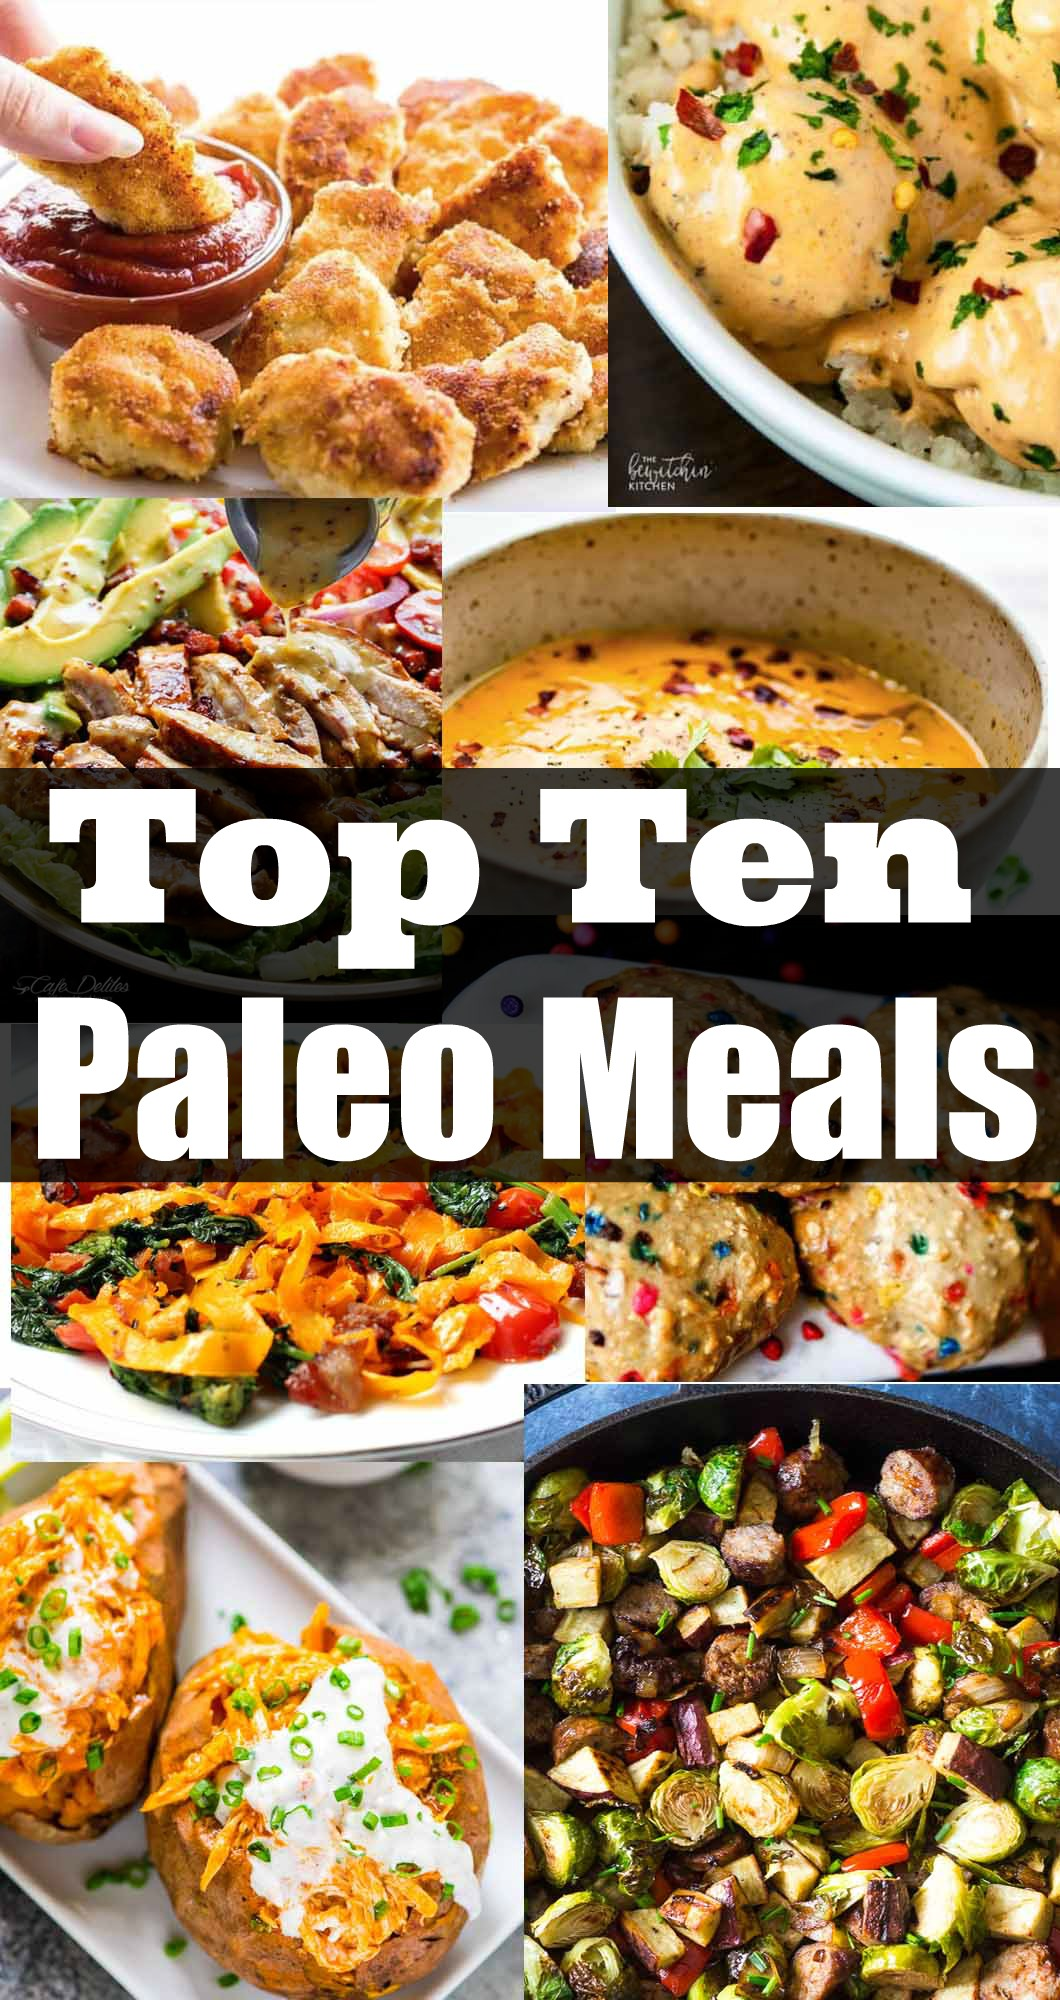 Top Ten Paleo Meals by Jessica from Happily Hughes